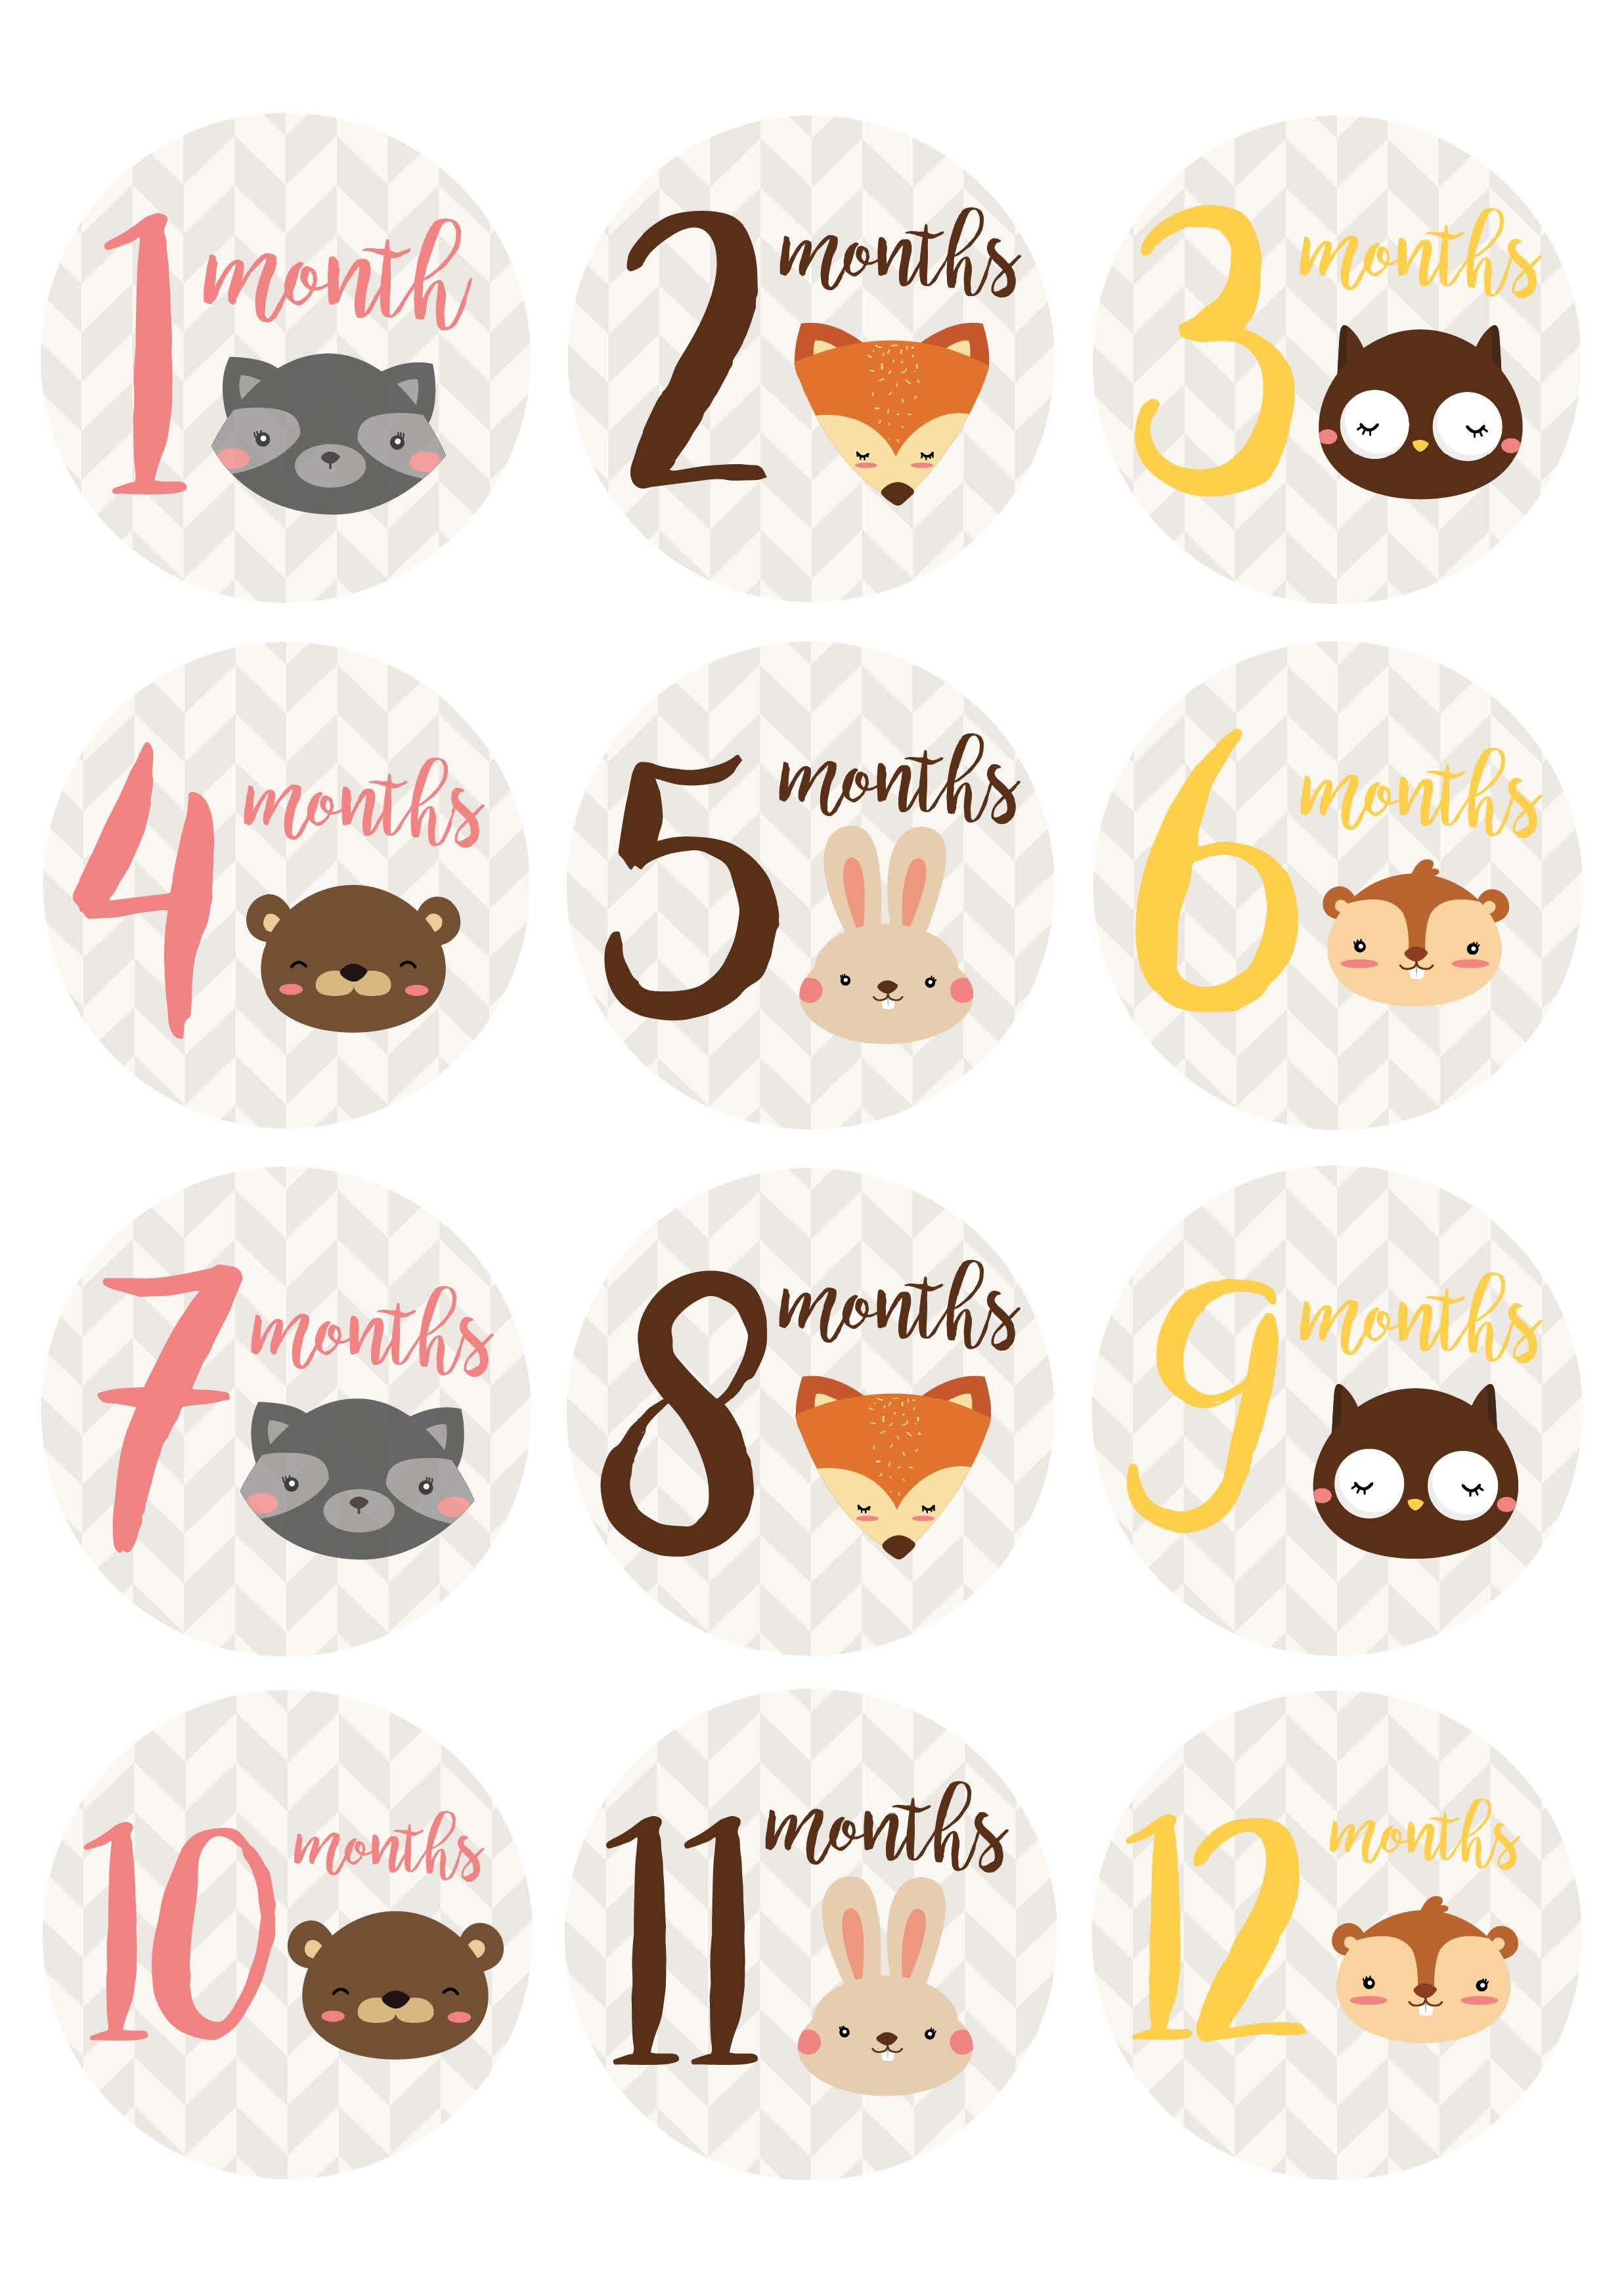 Free Printable Baby Milestone Stickers From Countryside Amish Furniture Print The Baby Month Stickers Baby Milestone Stickers Baby Milestone Cards Printable